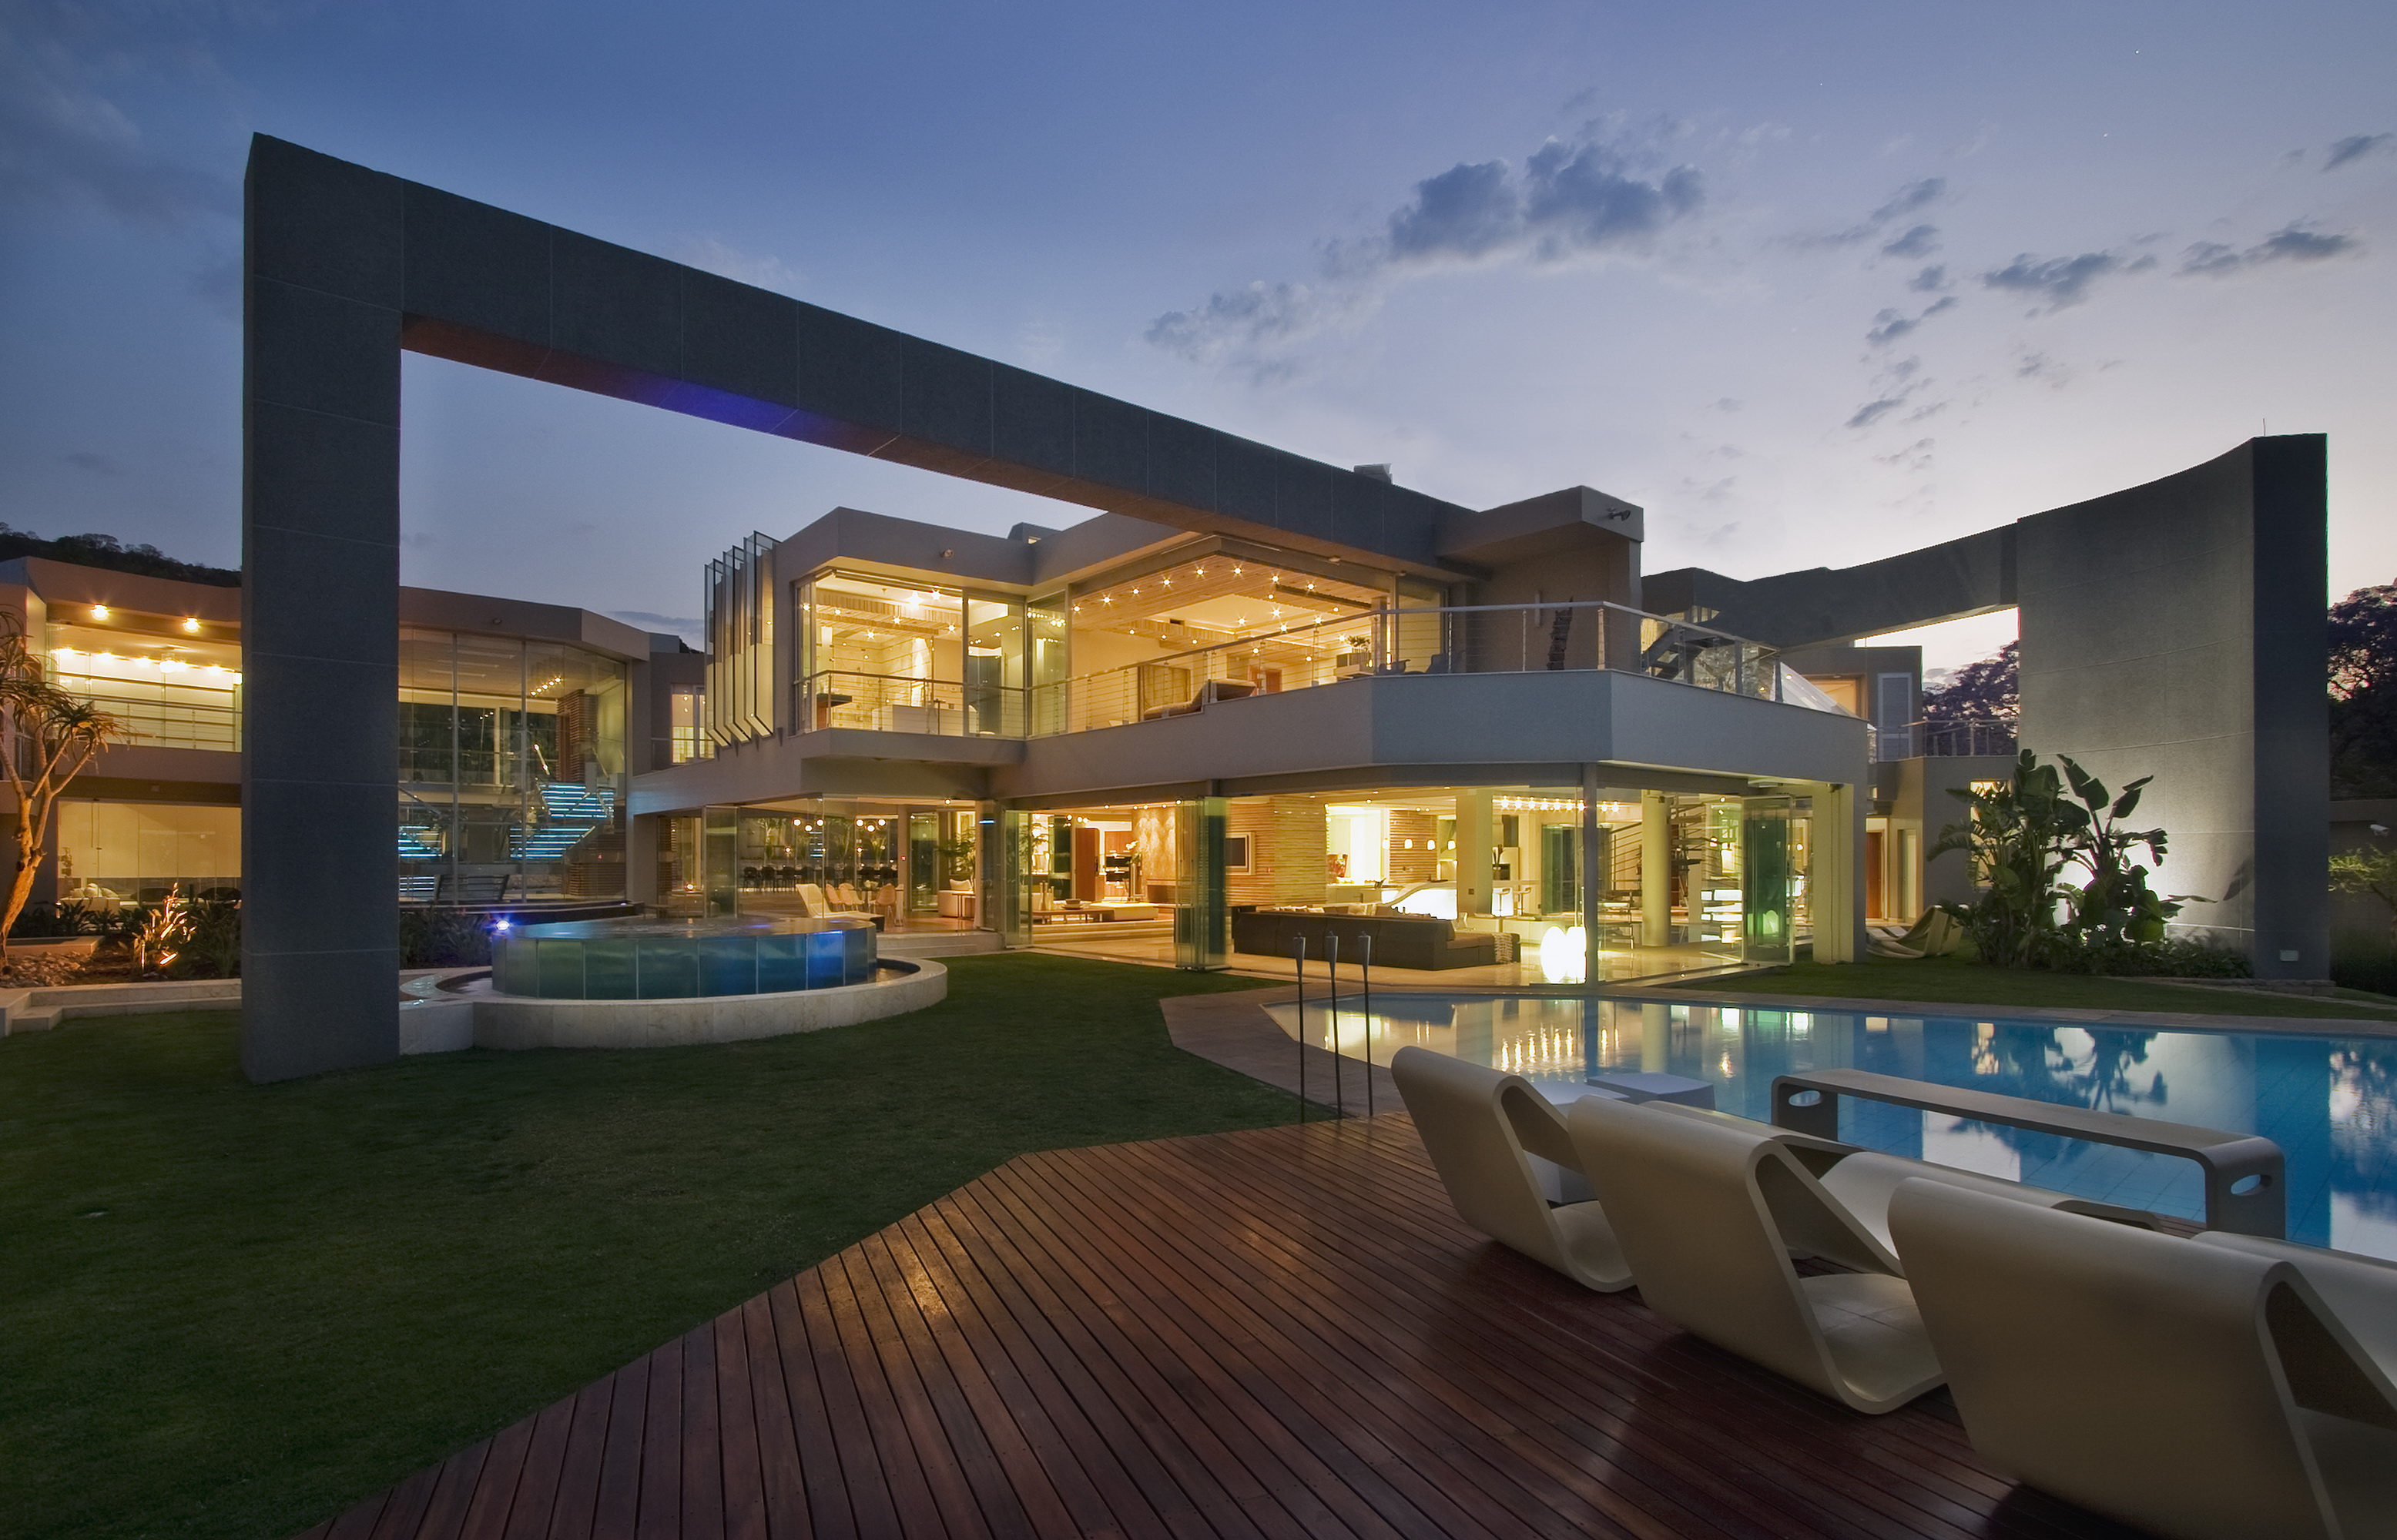 Glass house architect magazine johannesbrg south africa multifamily new construction custom design glass and concrete home contemporary mansion